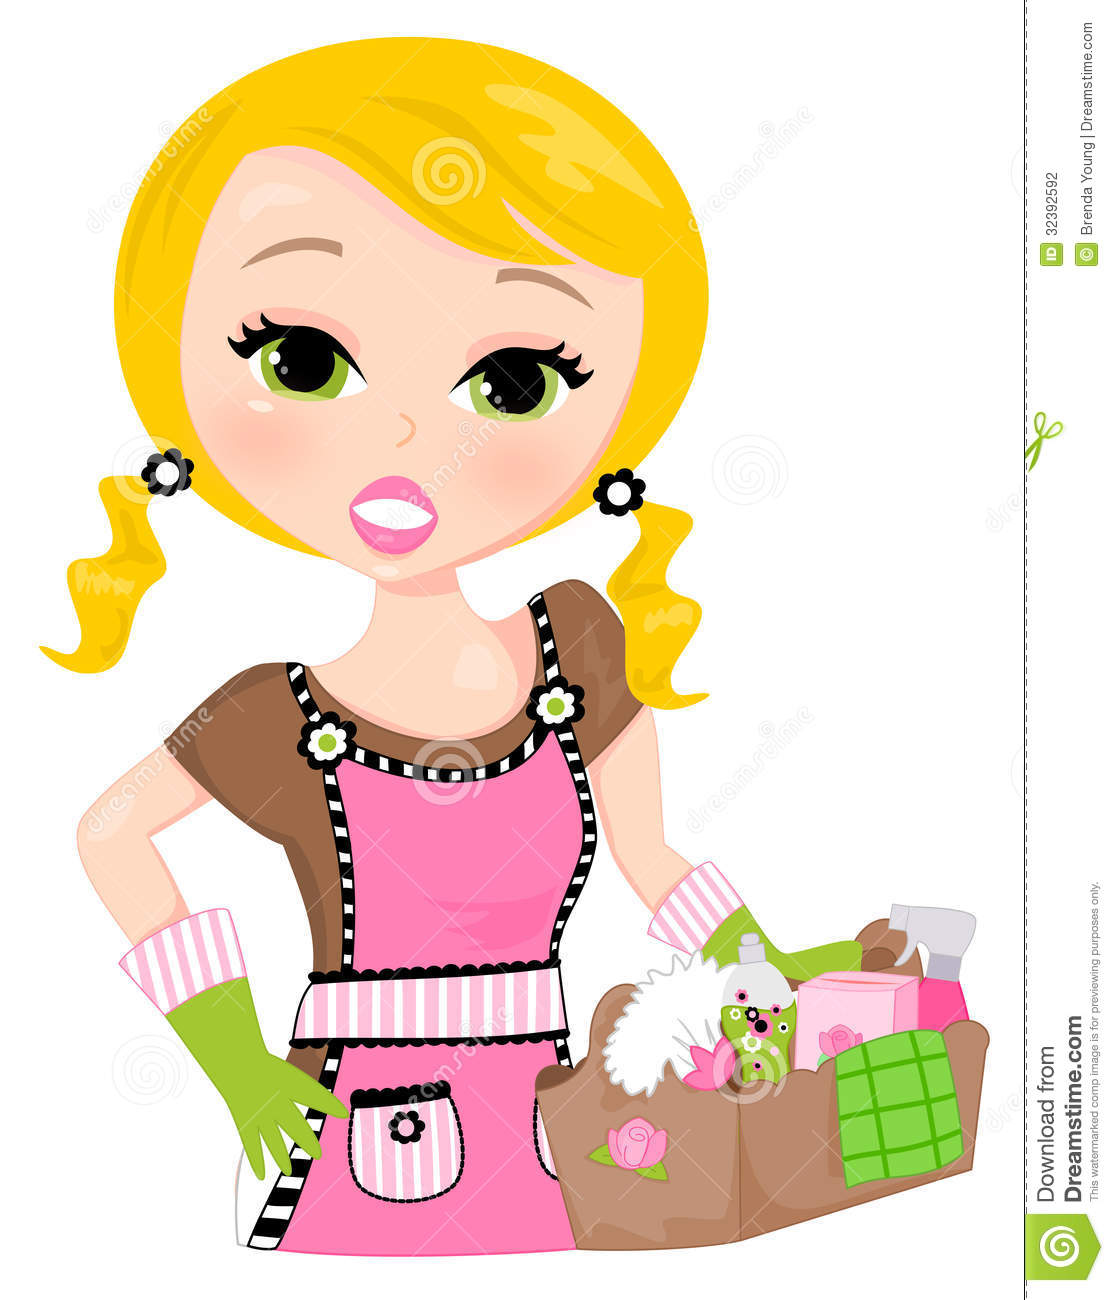 Cartoon Cleaning Lady Clipart - Clipart Kid